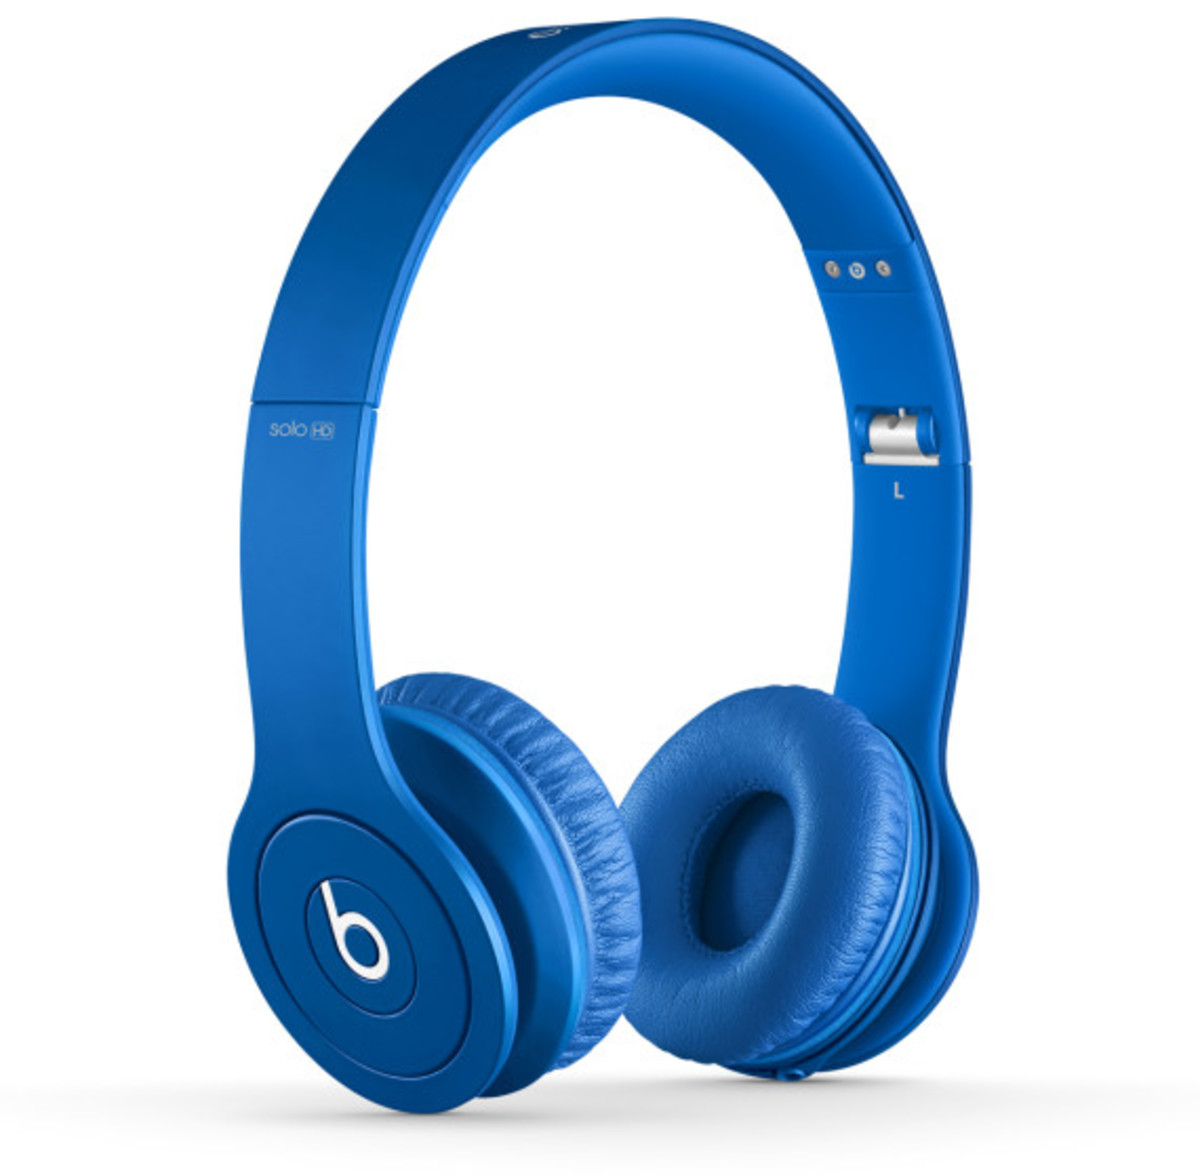 beats-by-dre-solo-hd-drenched-in-color-headphone-collection-09